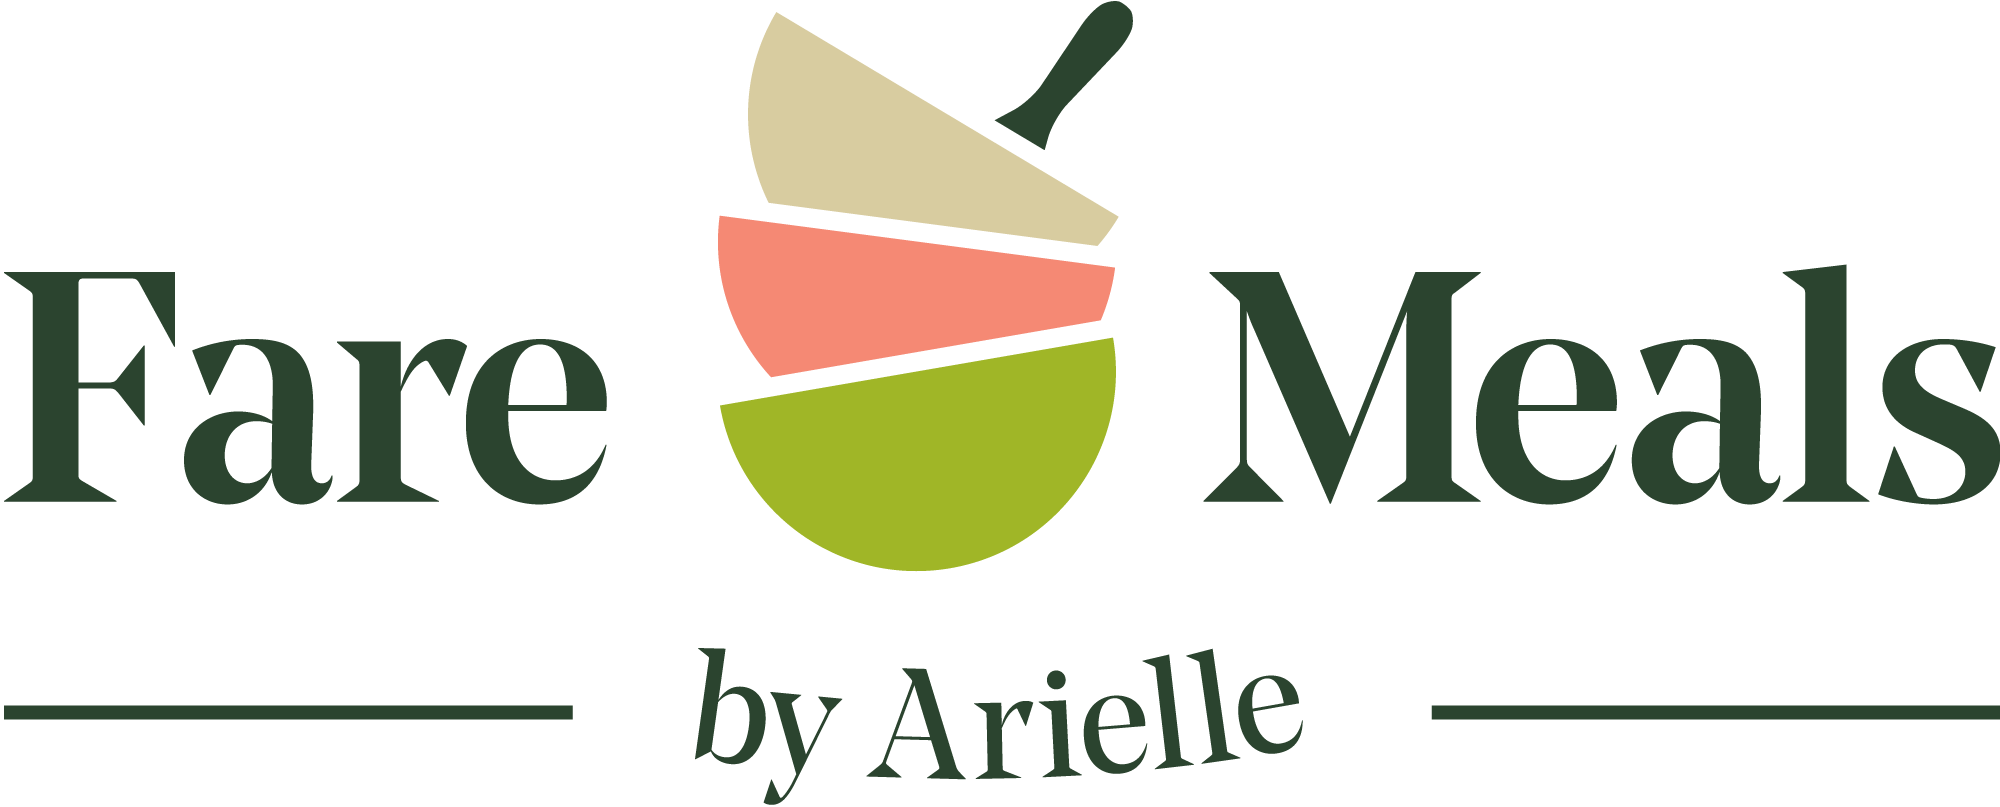 Fare Meals by Arielle